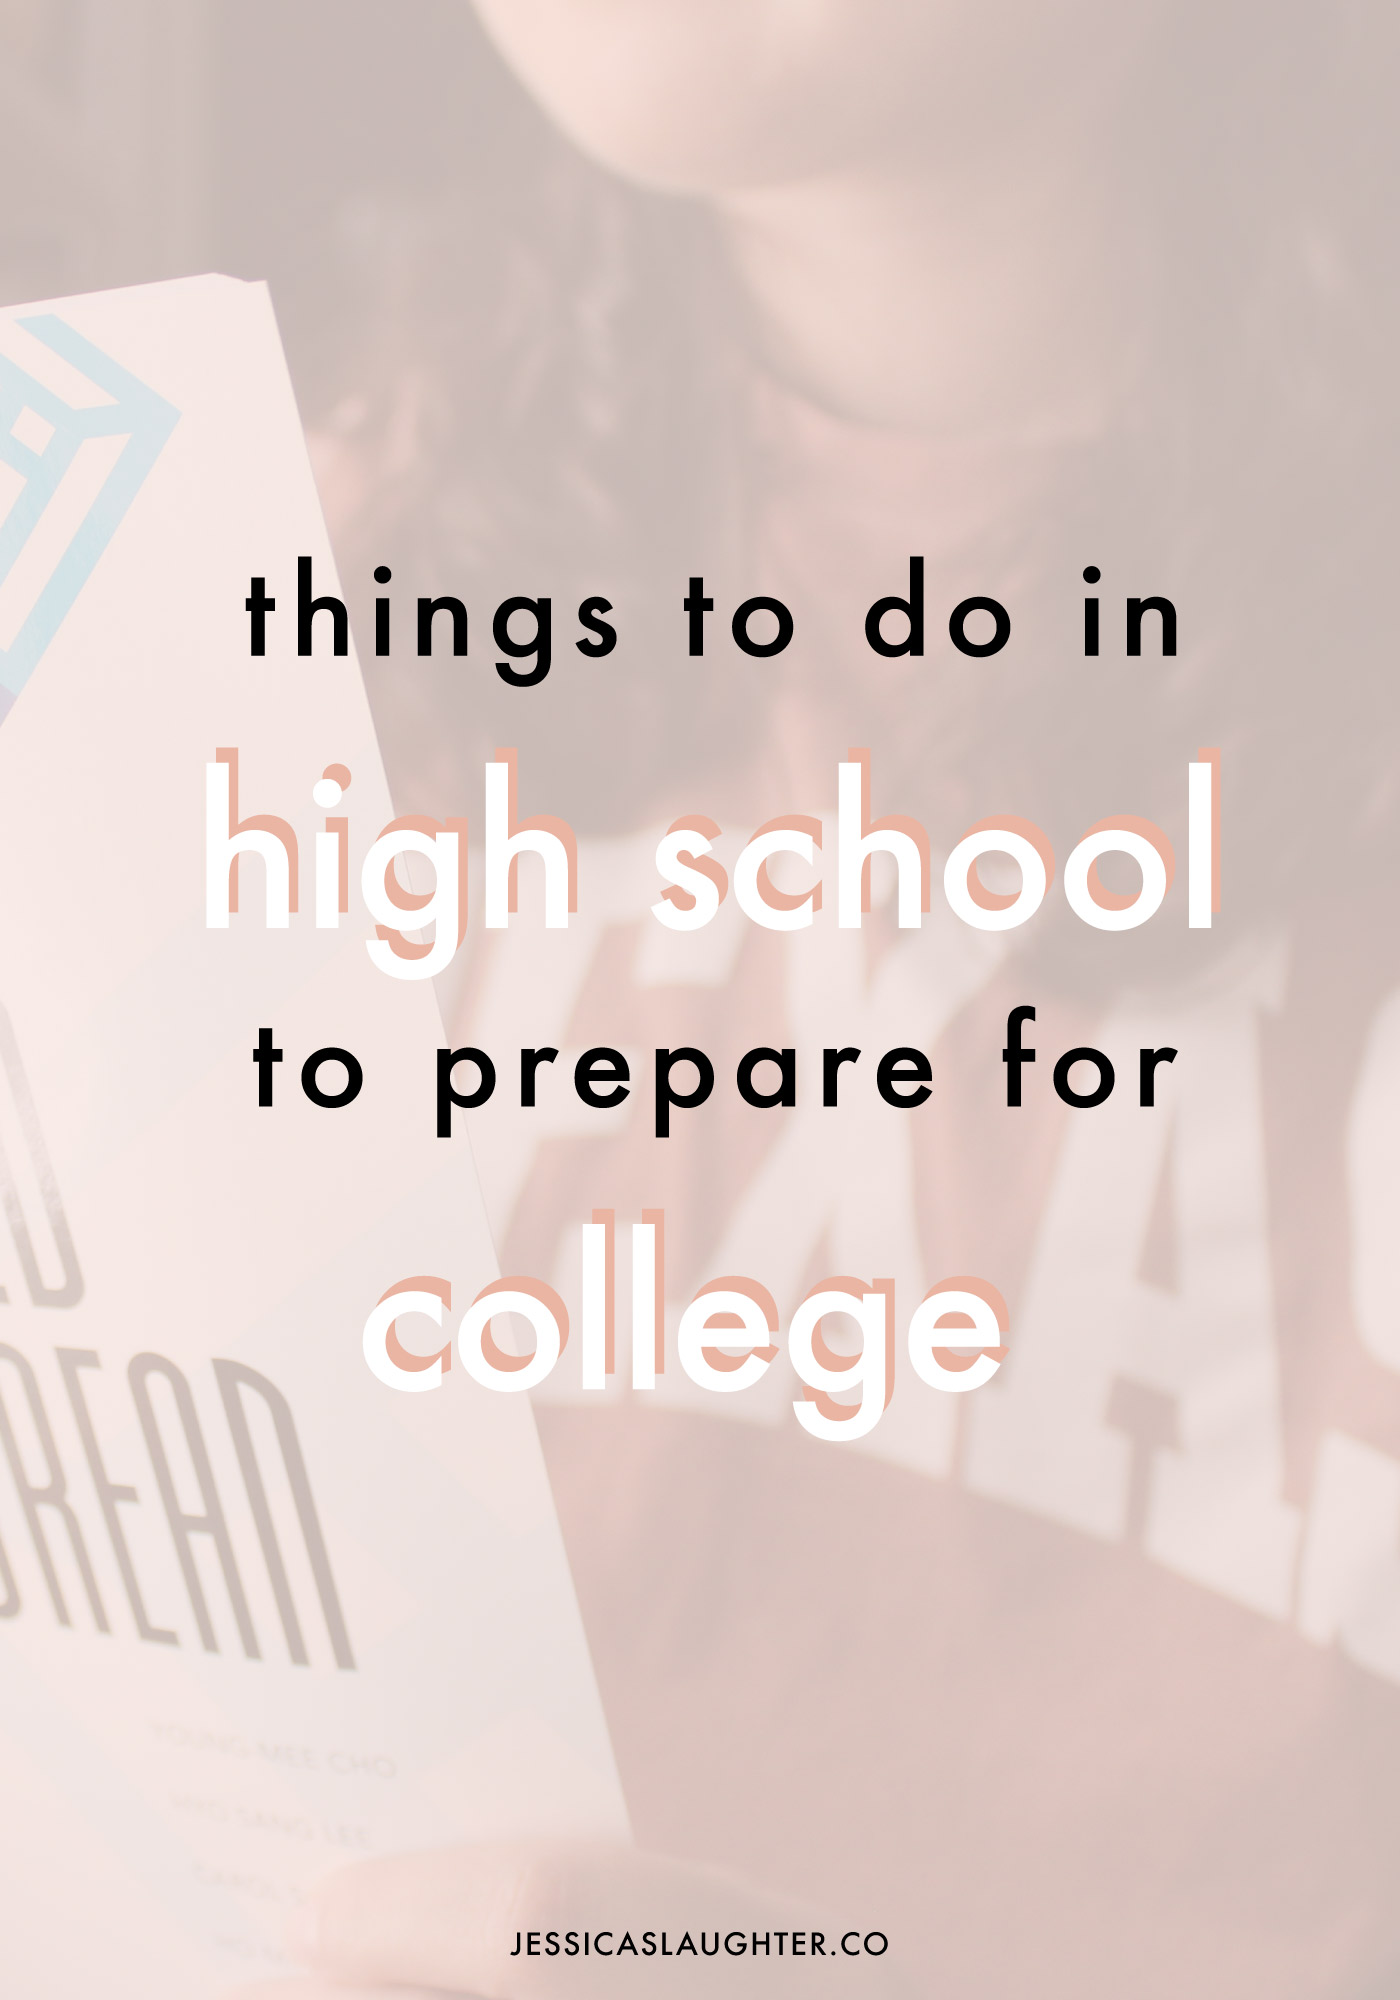 things to do in high school to prepare for college!